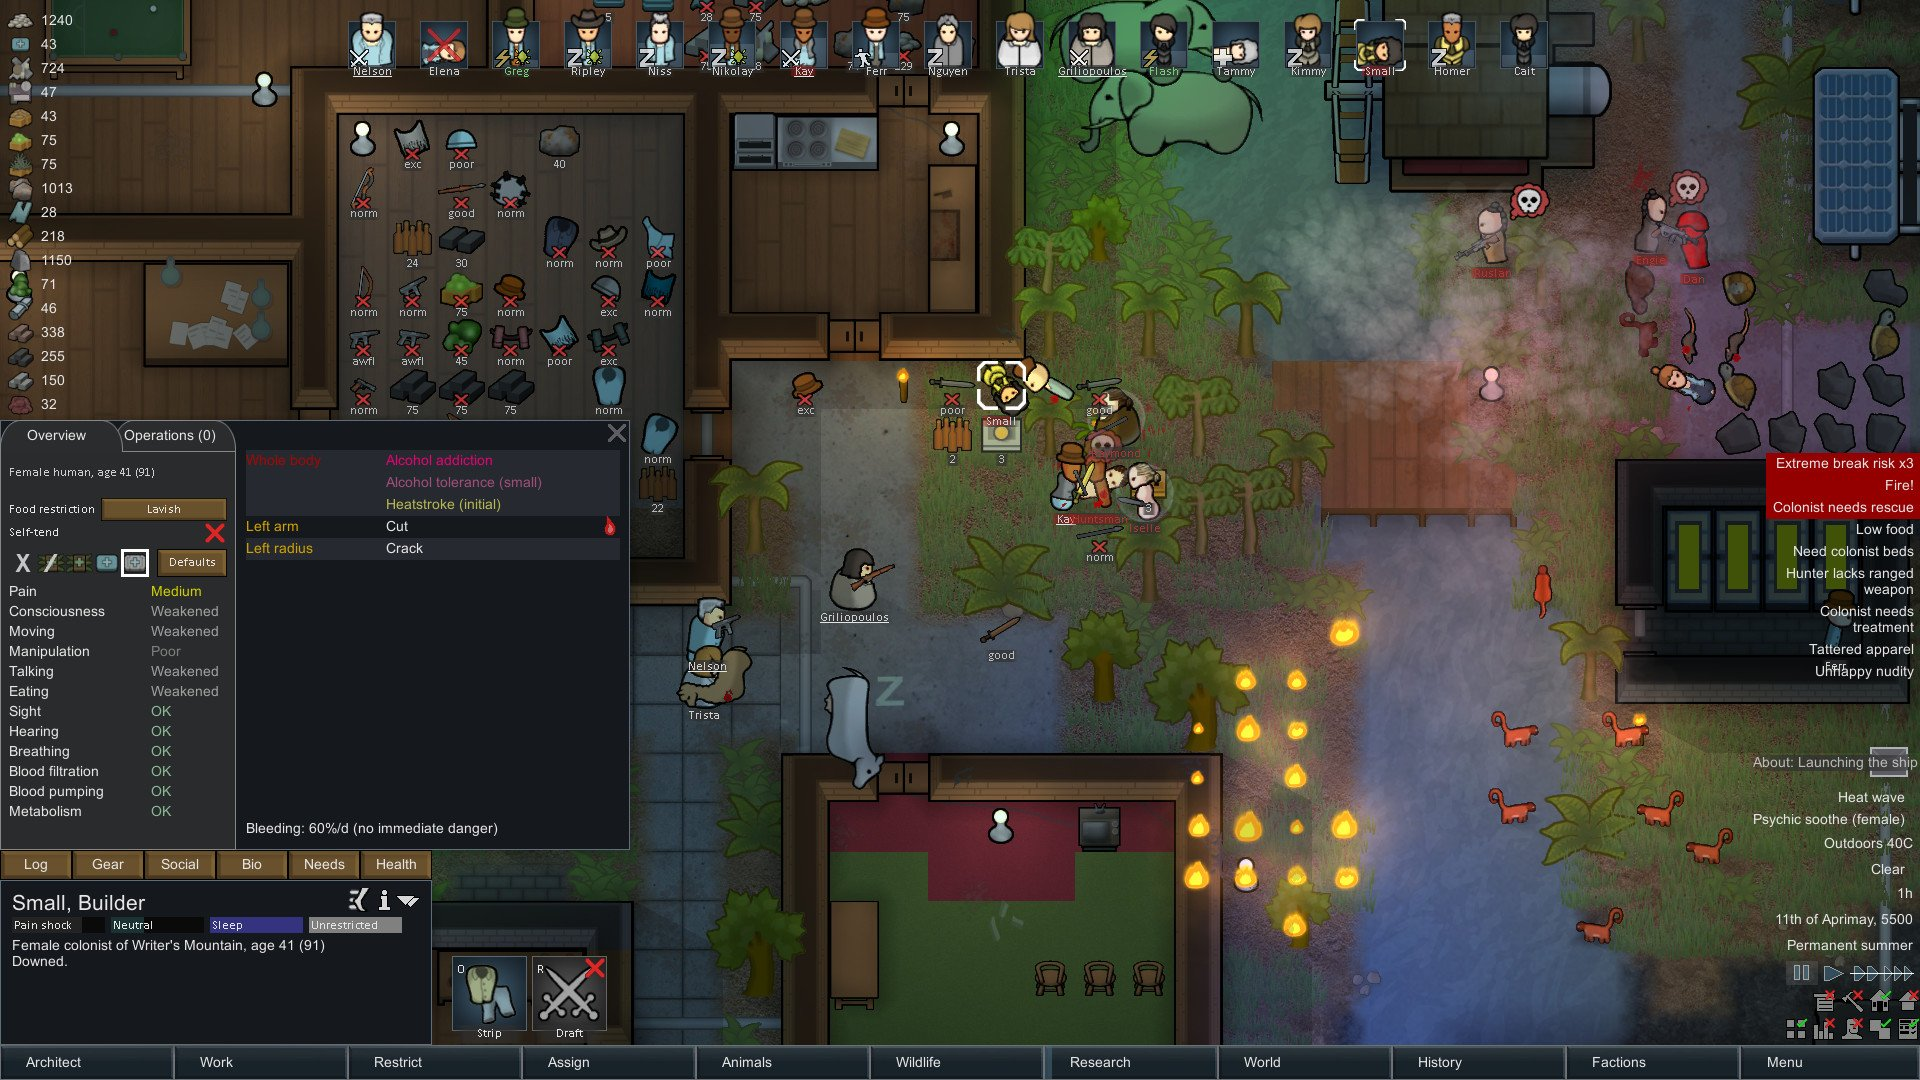 Prison Architect looks like a holiday camp.